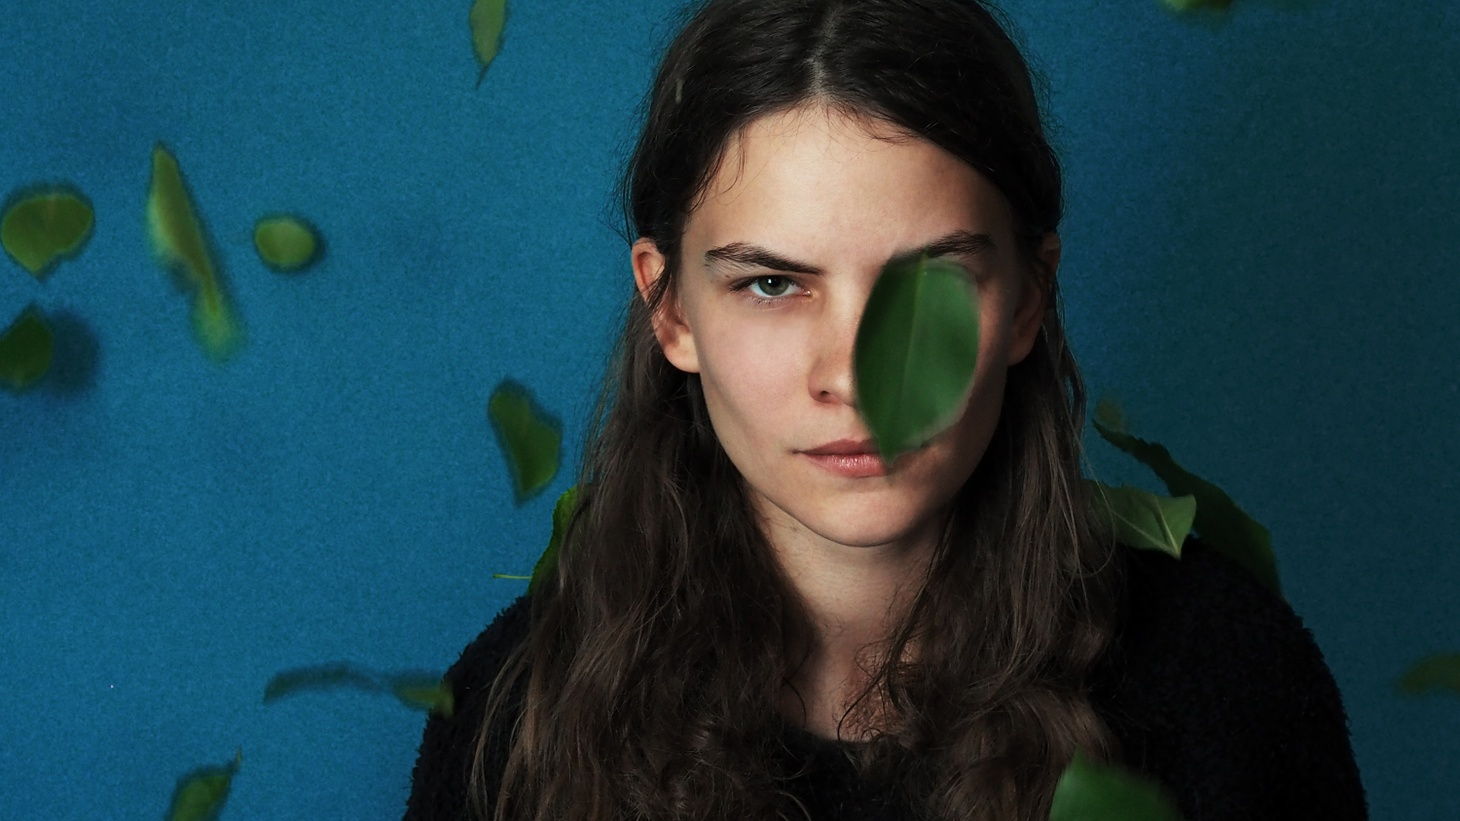 Sting and Trudie Styler's daughter Eliot Sumner has music in her blood and a sound that is her very own. She's lent her vocals to Miike Snow and Trentemoller, and will be releasing her self titled debut album soon.